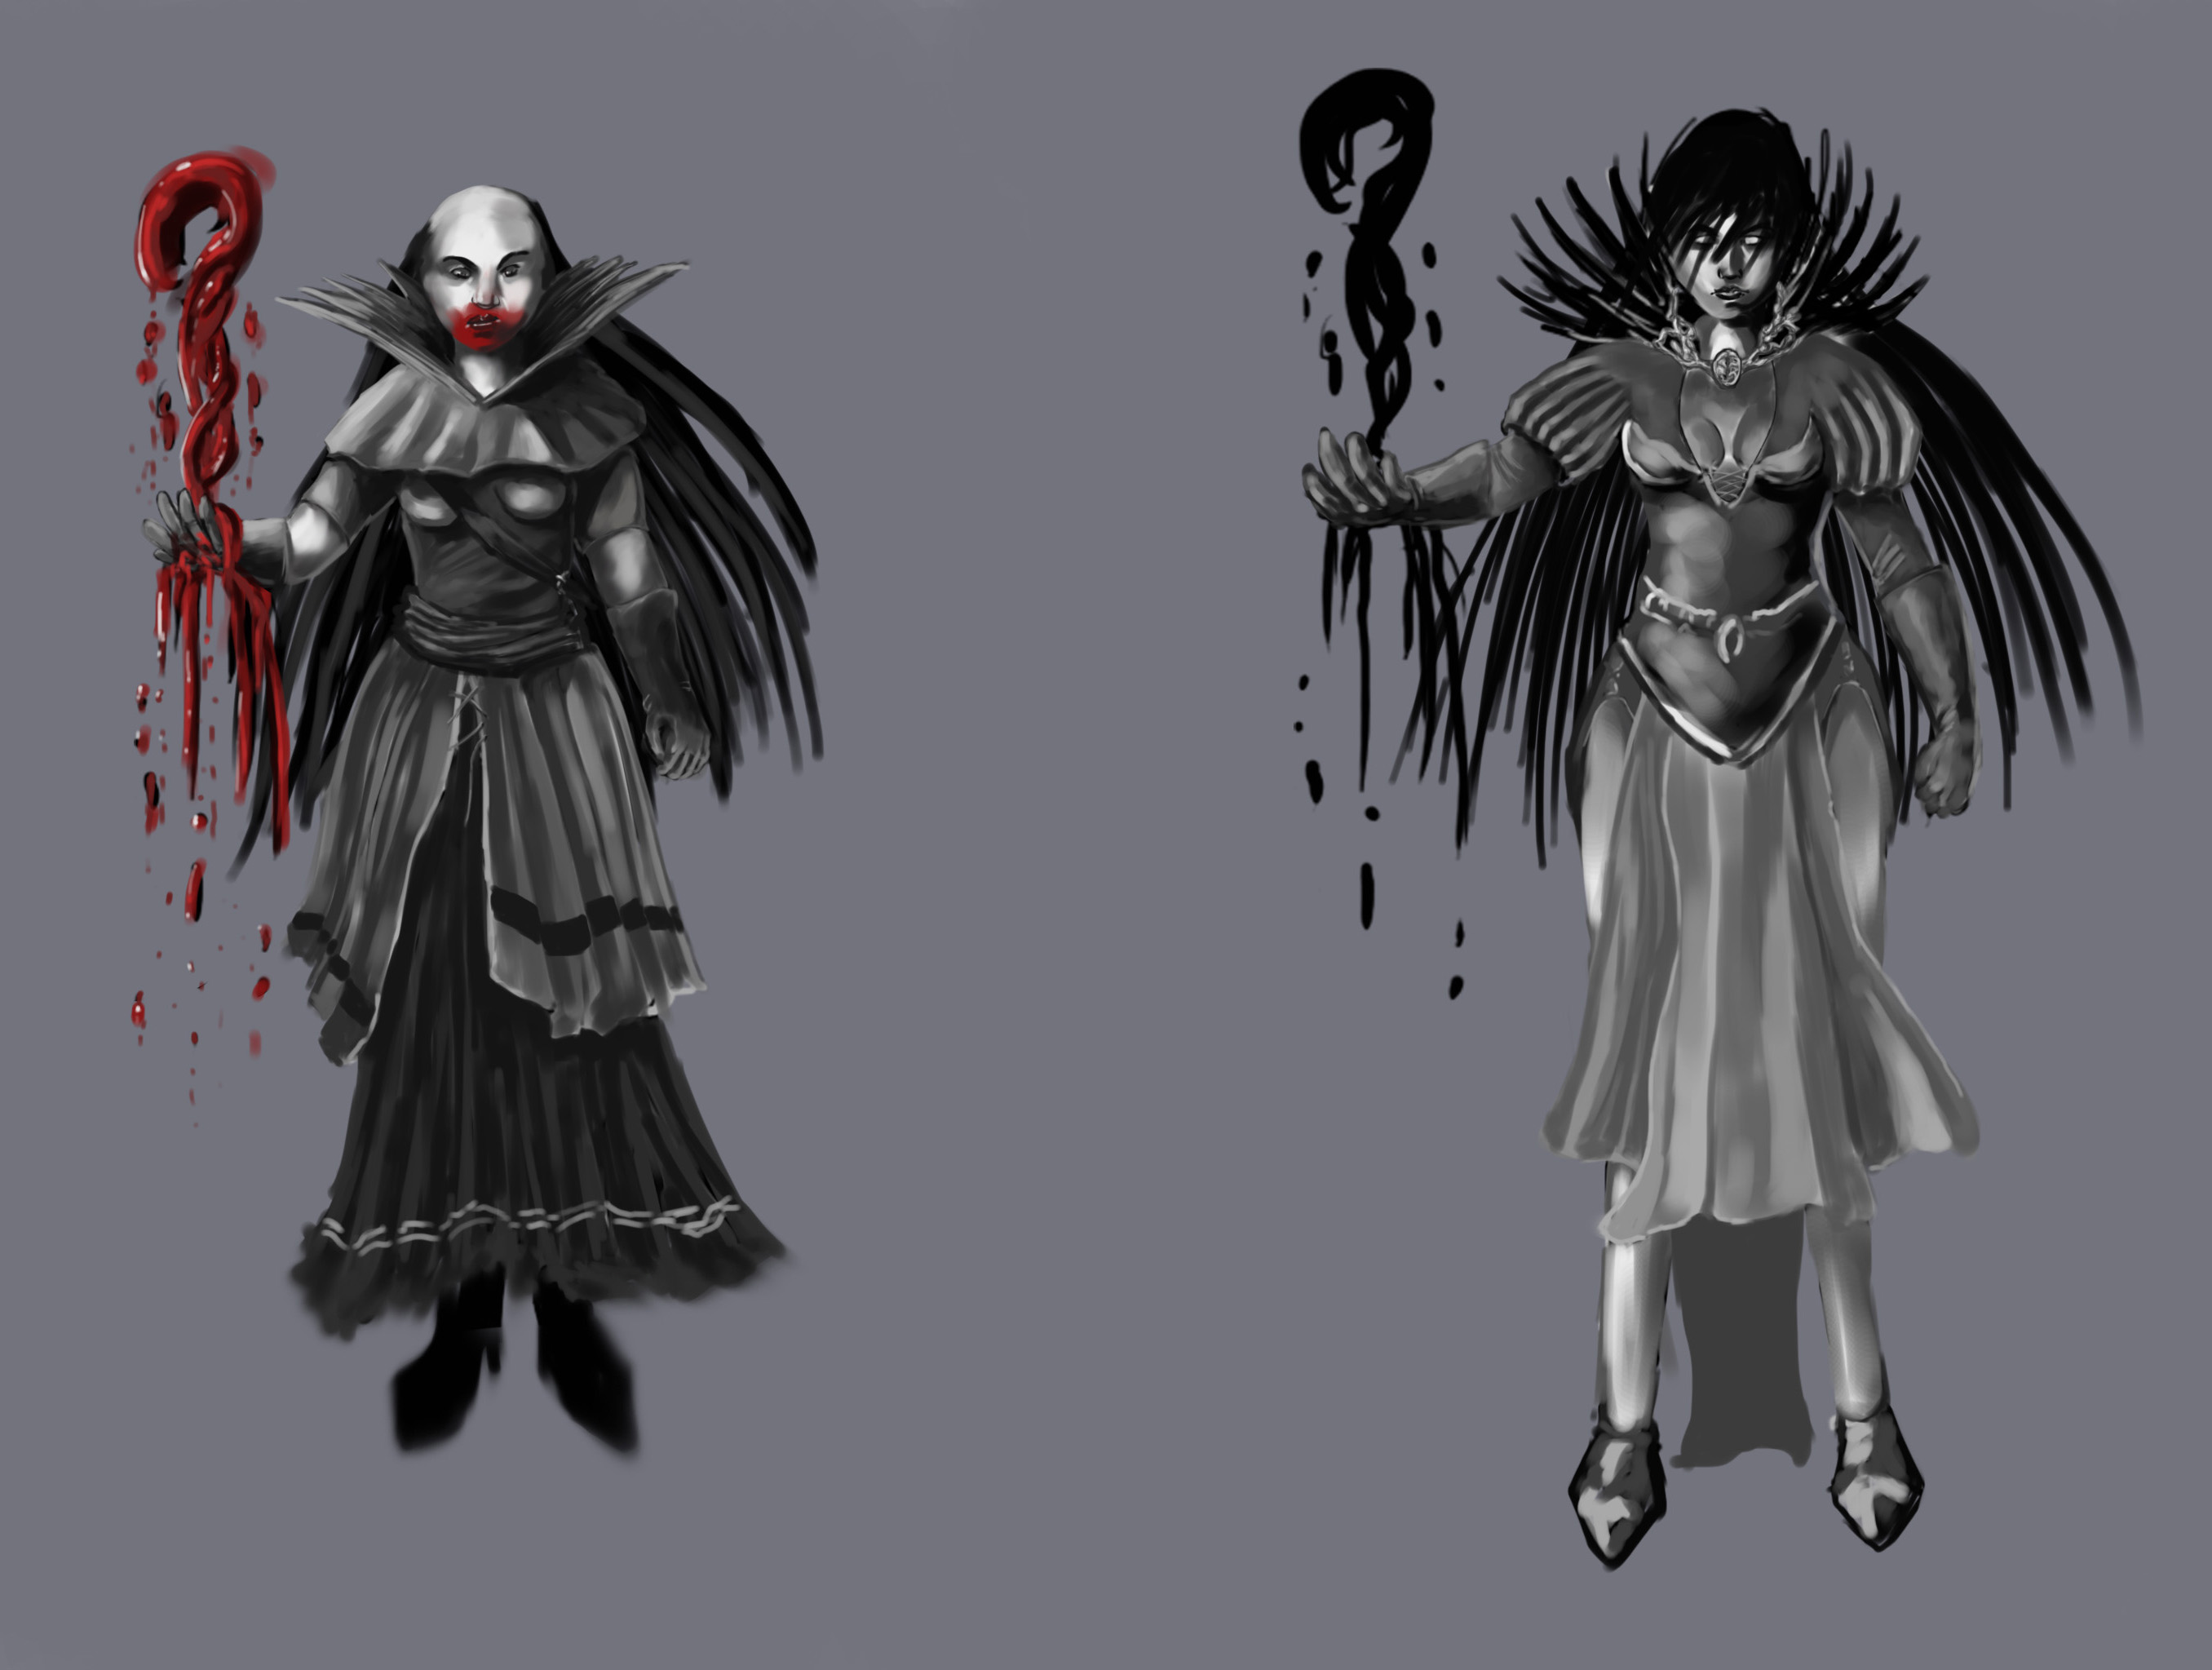 [Image: 10_04_13_witches_design_by_mateusrocha-d61cktg.jpg]